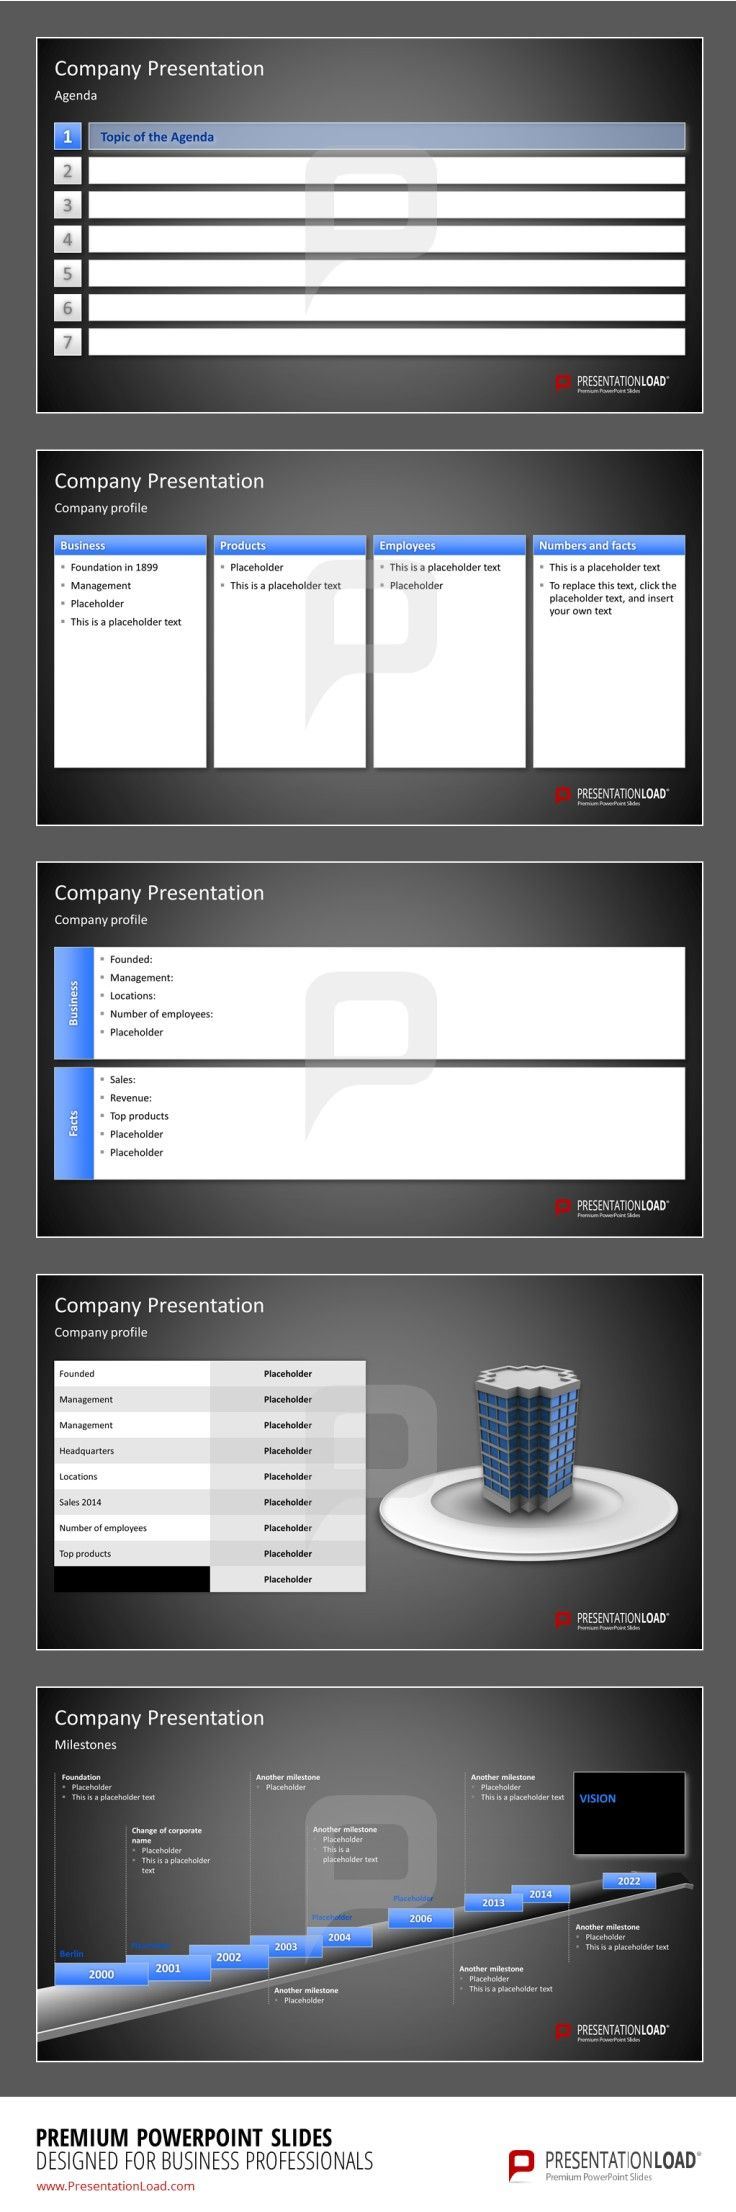 Company Presentation PowerPoint Templates Use our Company Presentation PowerPoint Templates to present your Company with a Company Profile containing information to Business, Products, Employees and Numbers & Facts. #presentationload  www.presentationl...